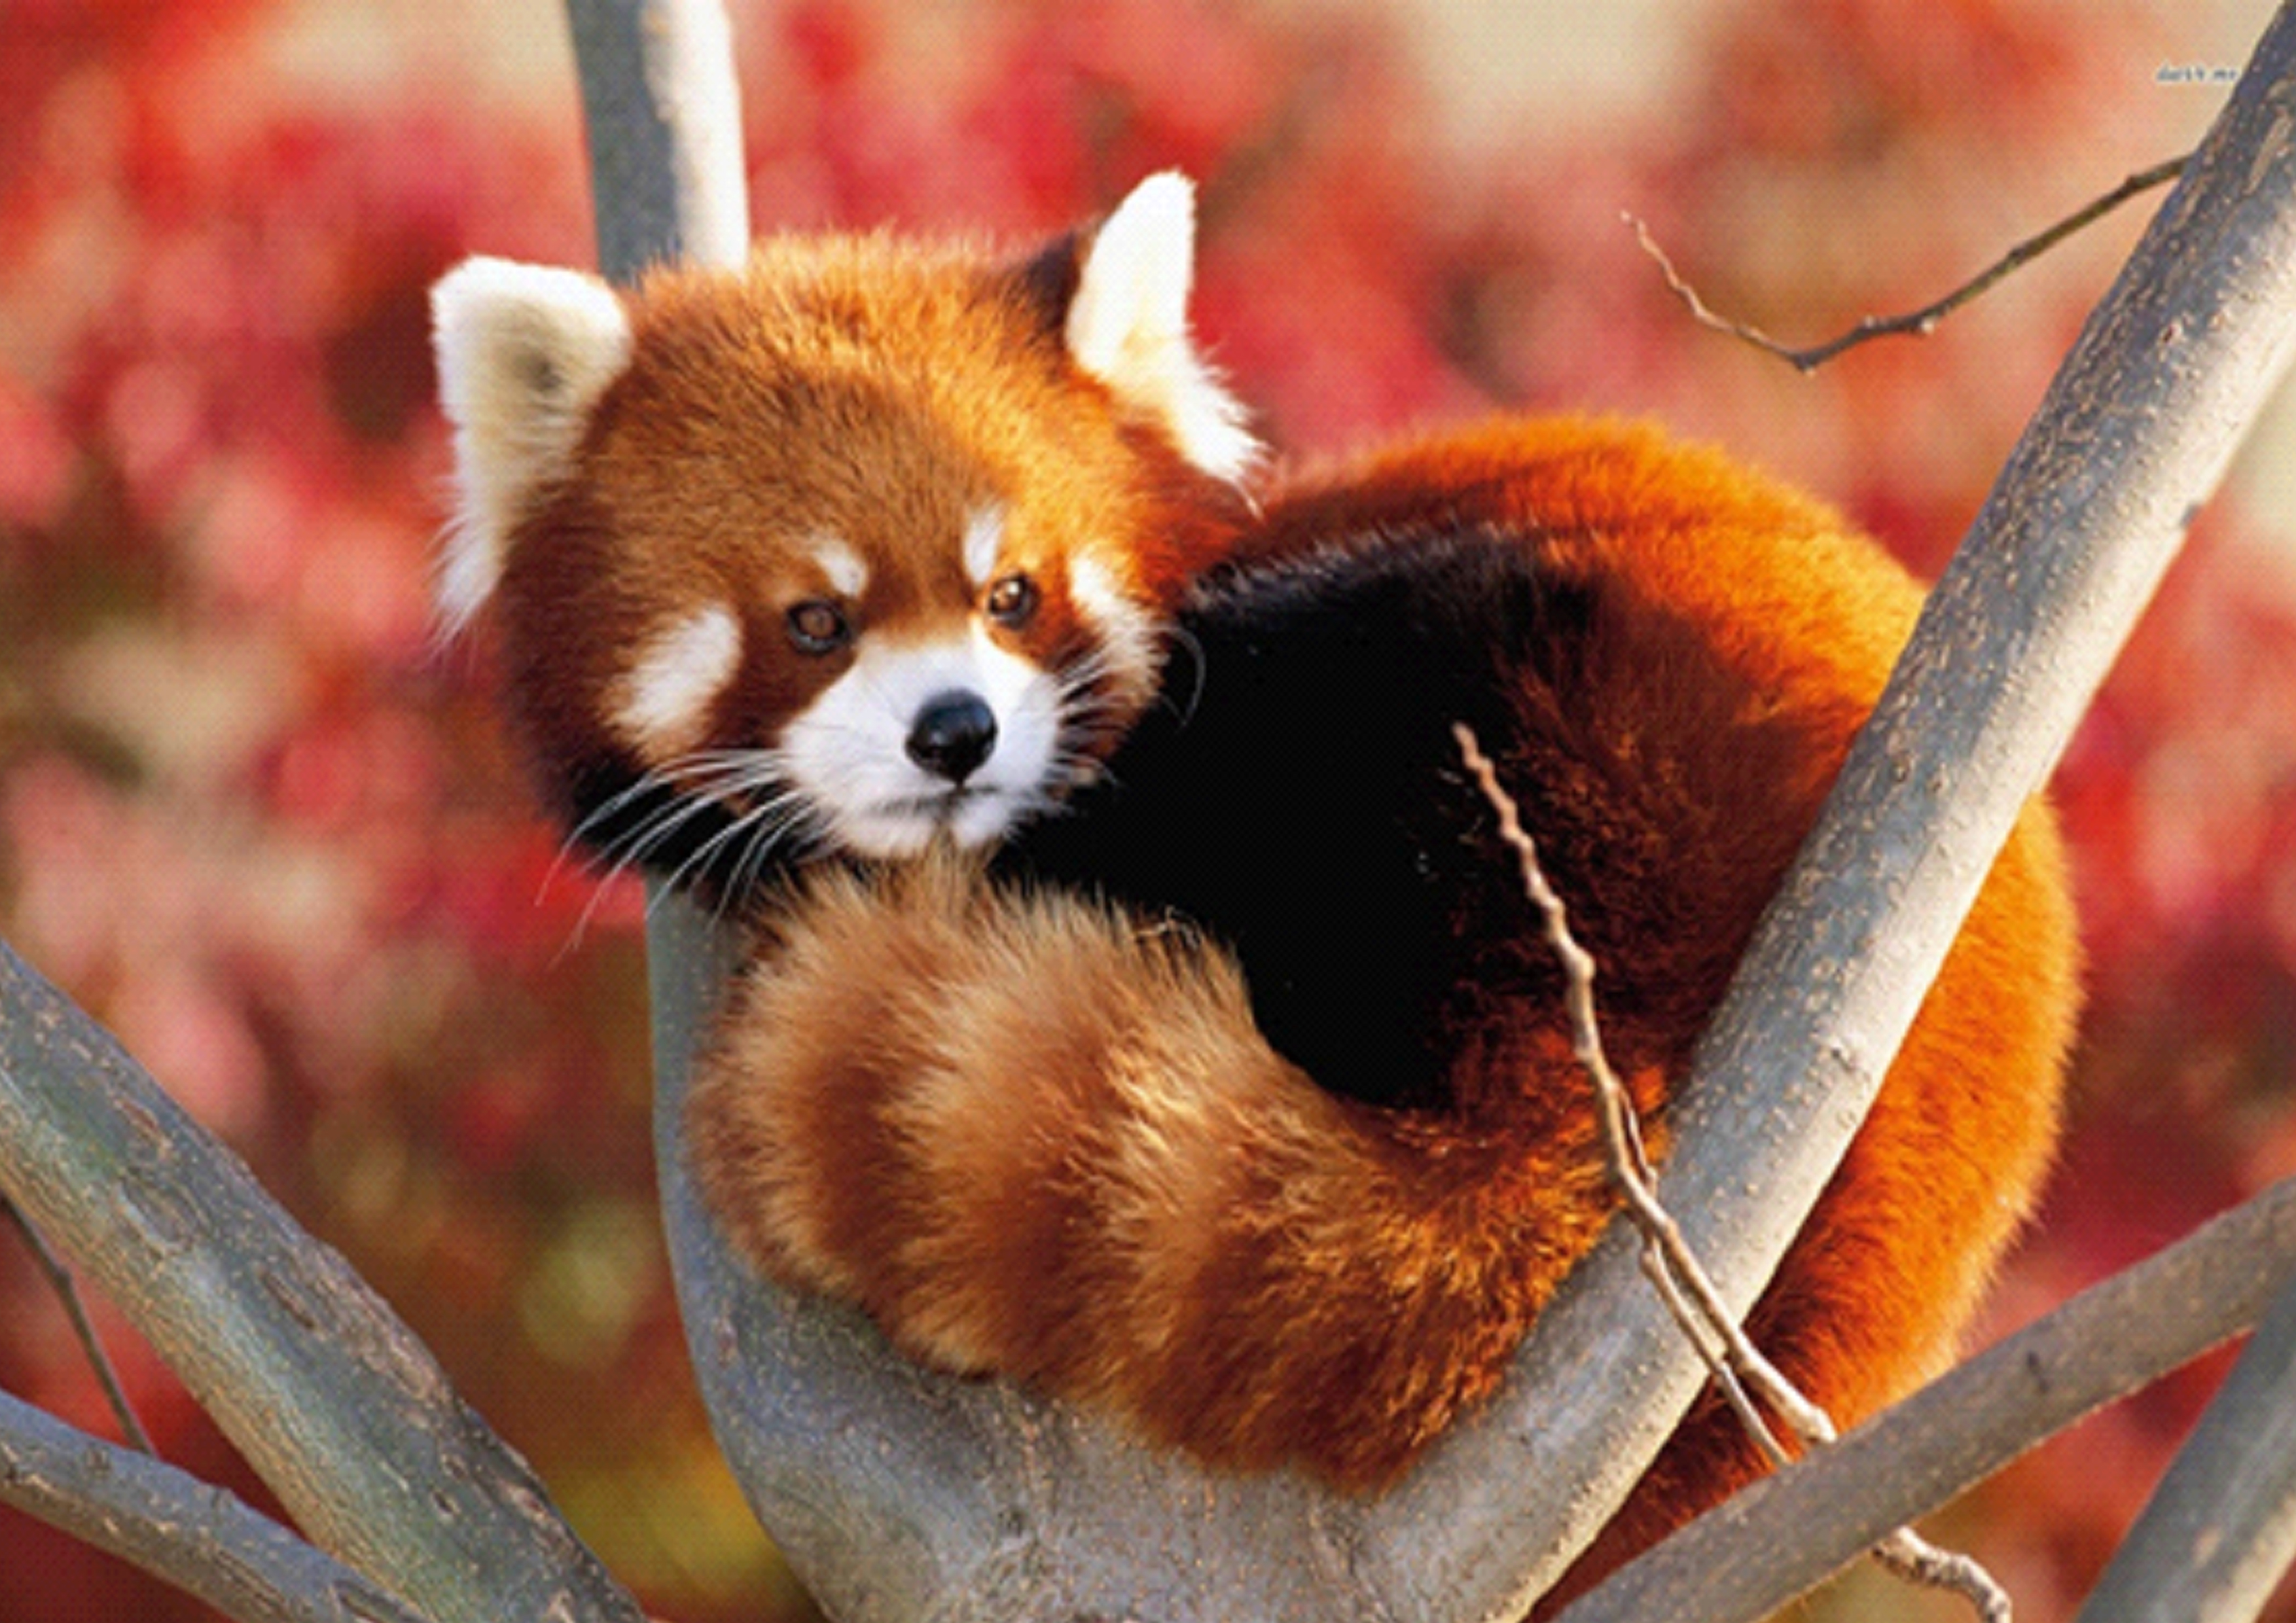 Image of: Wwf The Most Endangered Mammals That Are Found In 23 Hill And Mountain Districts Of The Country According To The Red Panda Network Panchthar Tourism Mailcom Conservationists Blame Nepal Government Of Turning Out In Red Pandas